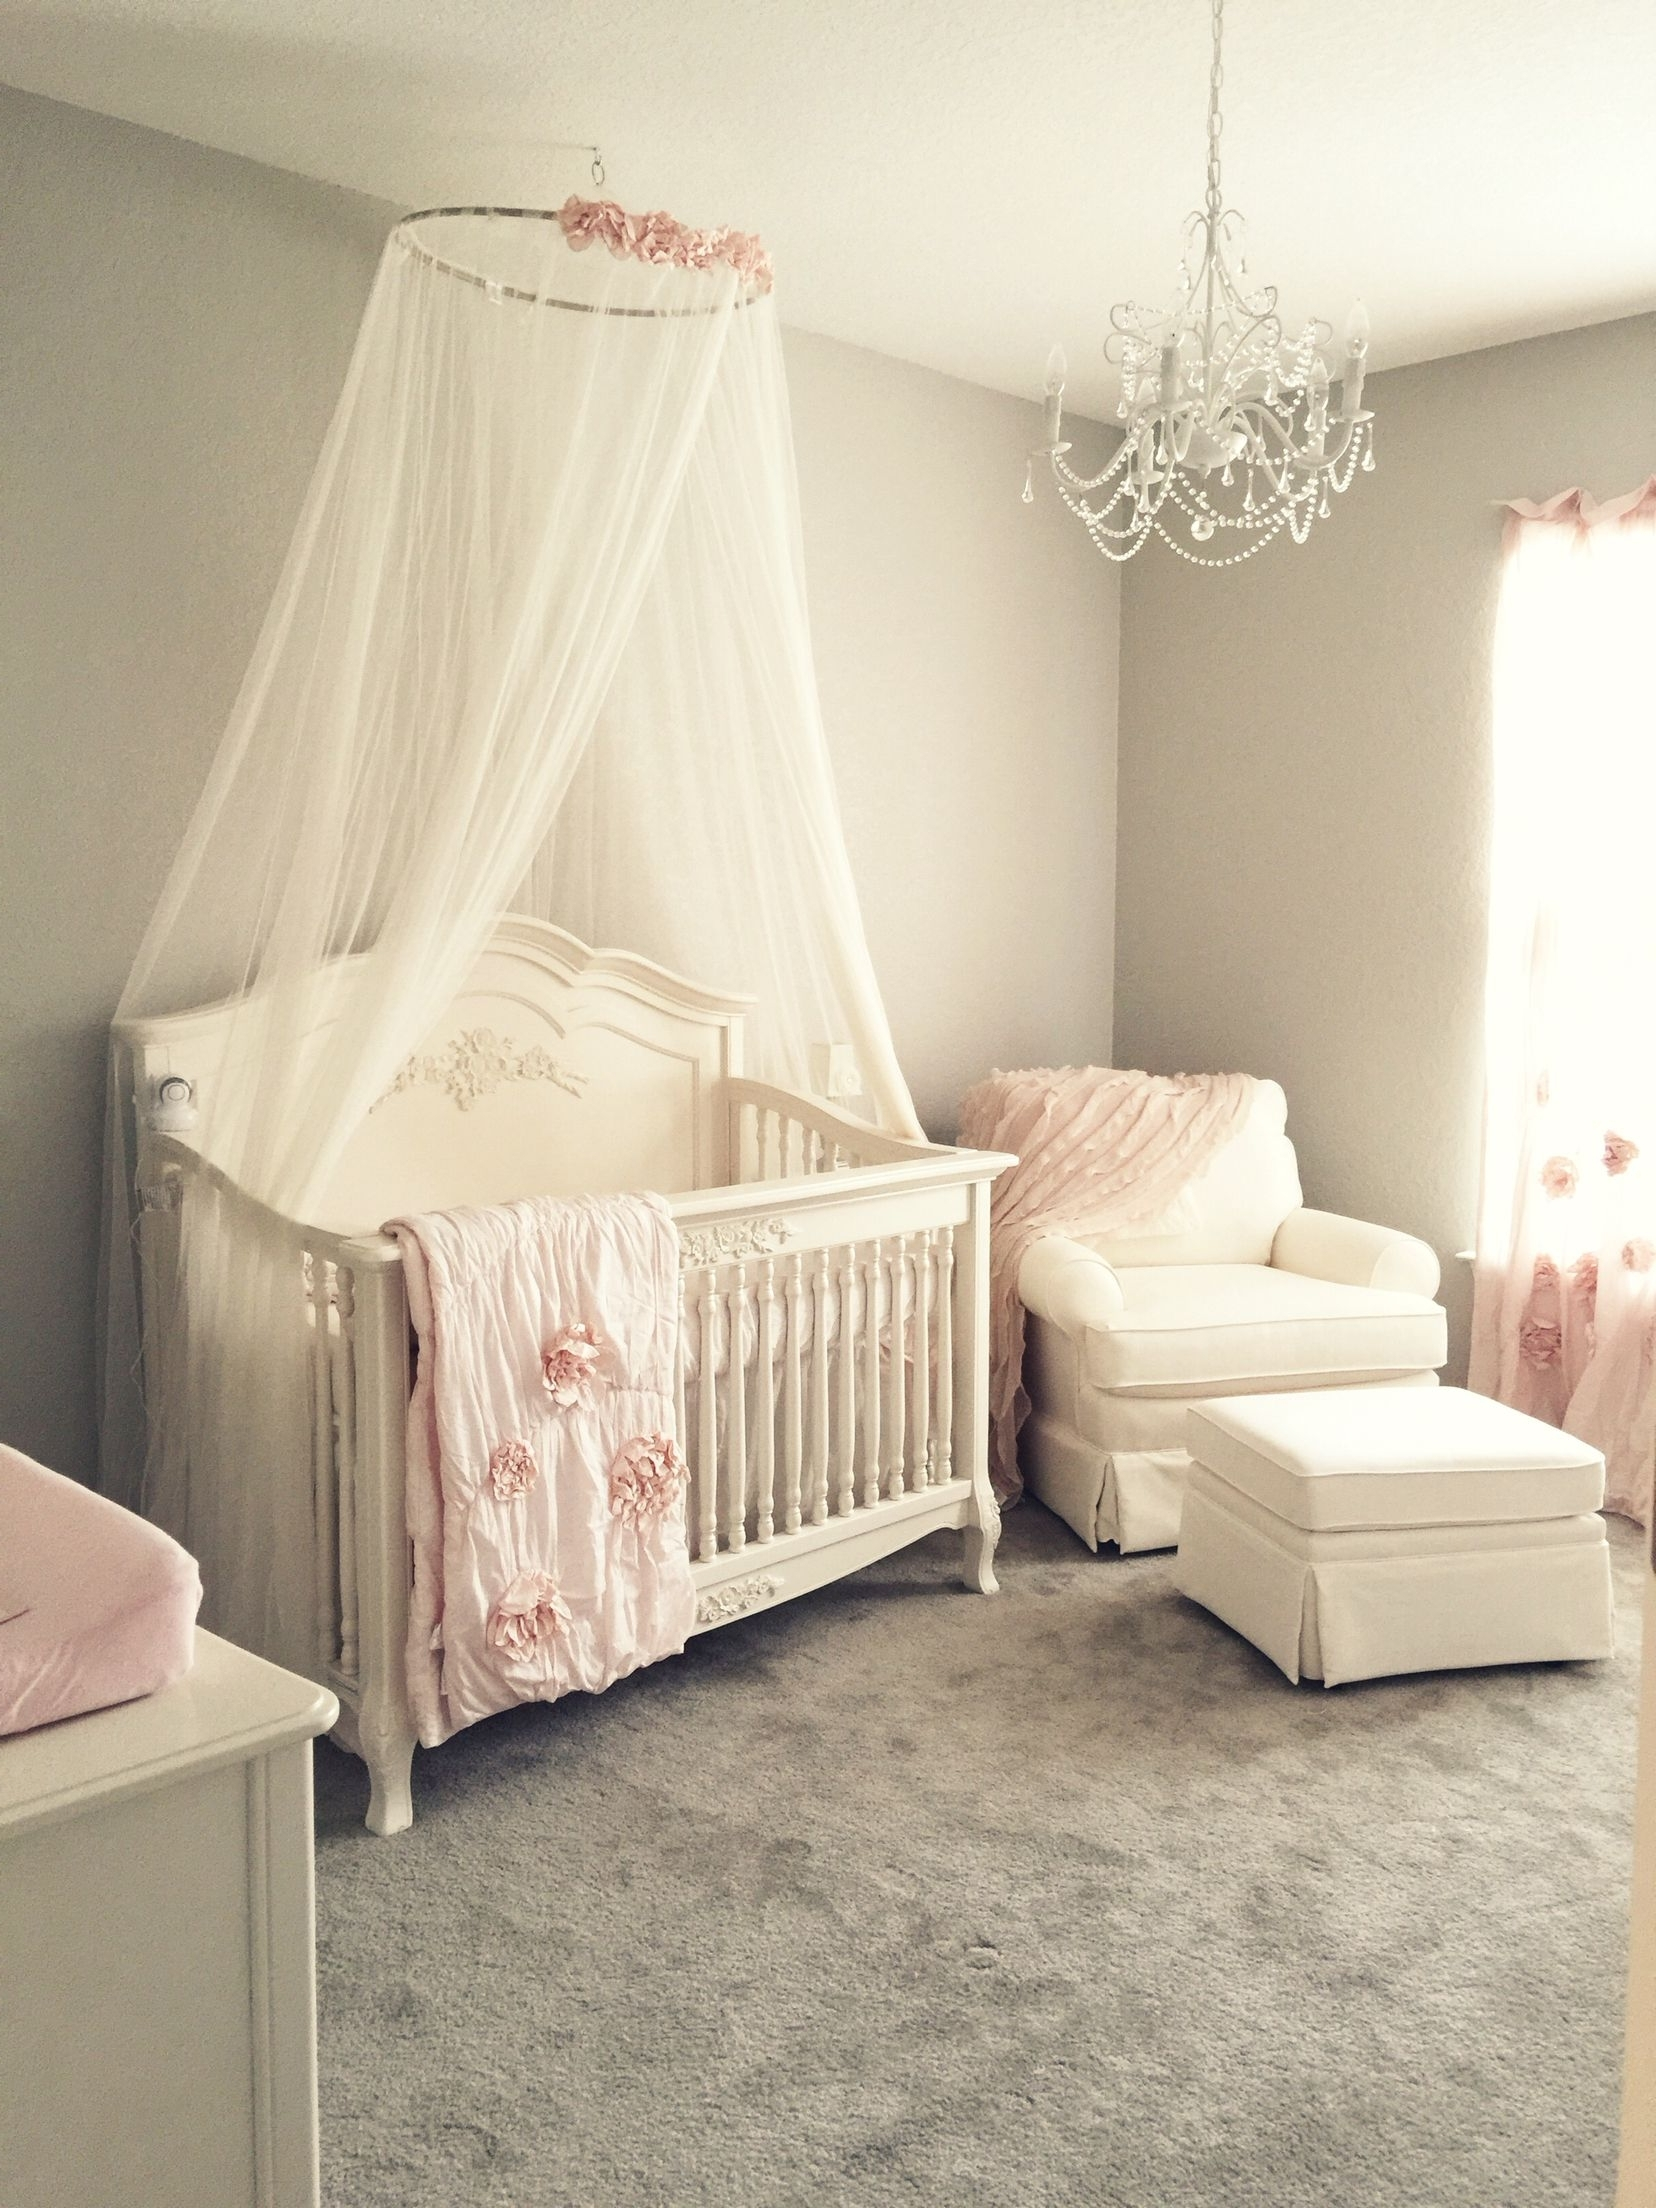 Chandeliers For Girl Nursery Regarding Recent Girly Pink Blush Nursery With Chandelier, Ivory Rocker And Glider (View 9 of 20)